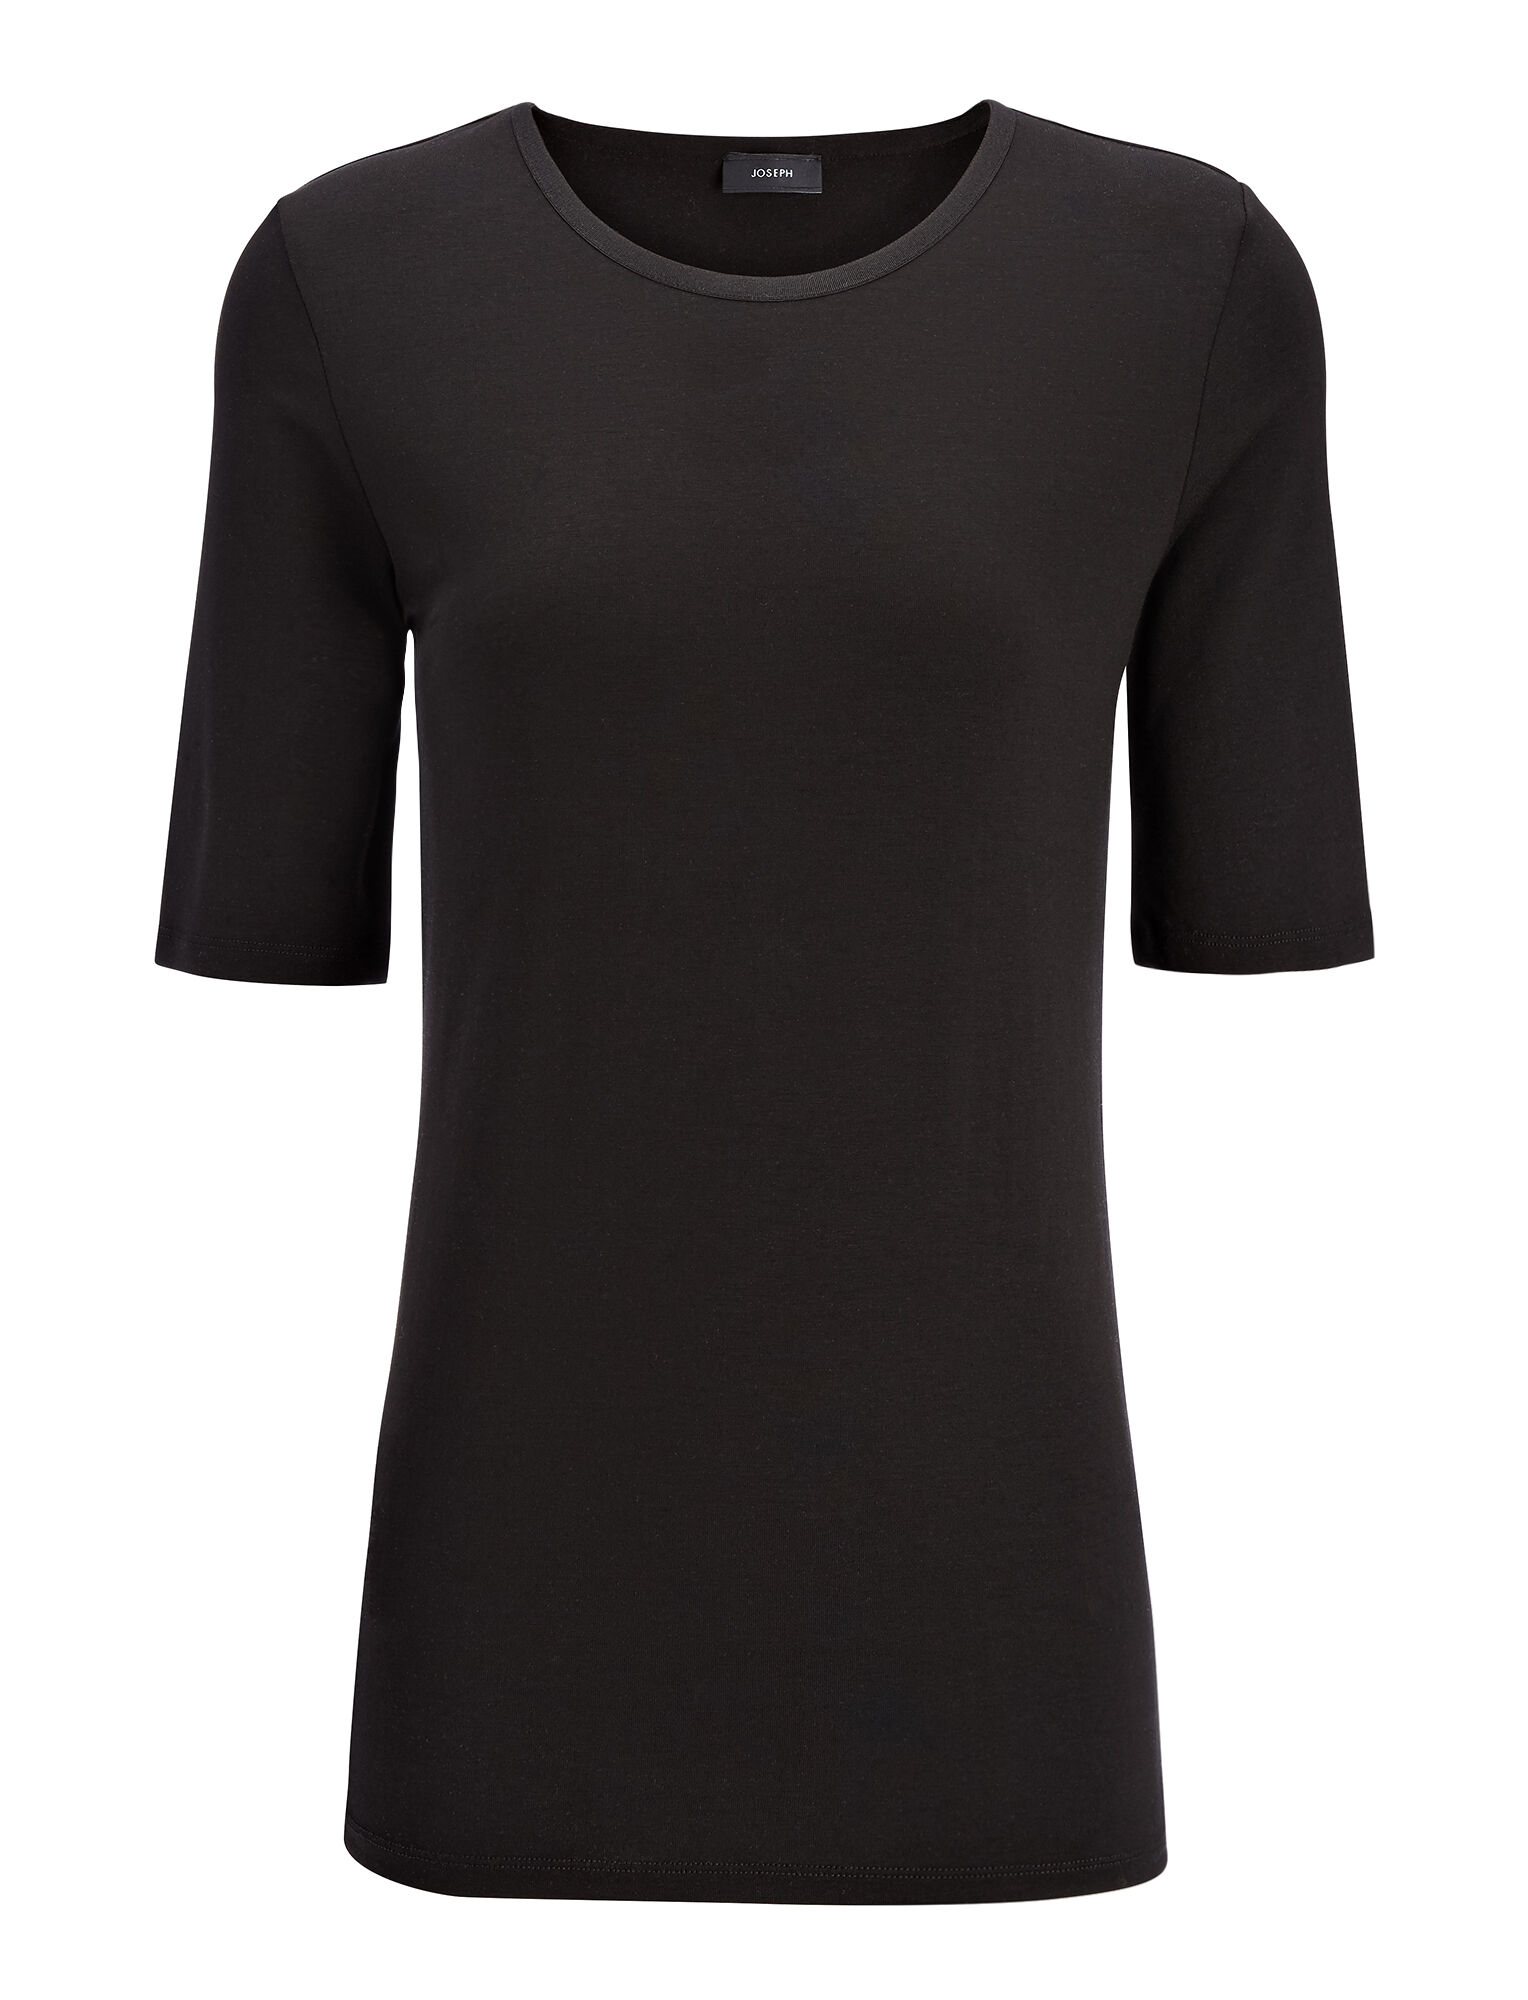 Joseph, Cotton Lyocell Stretch Top, in BLACK